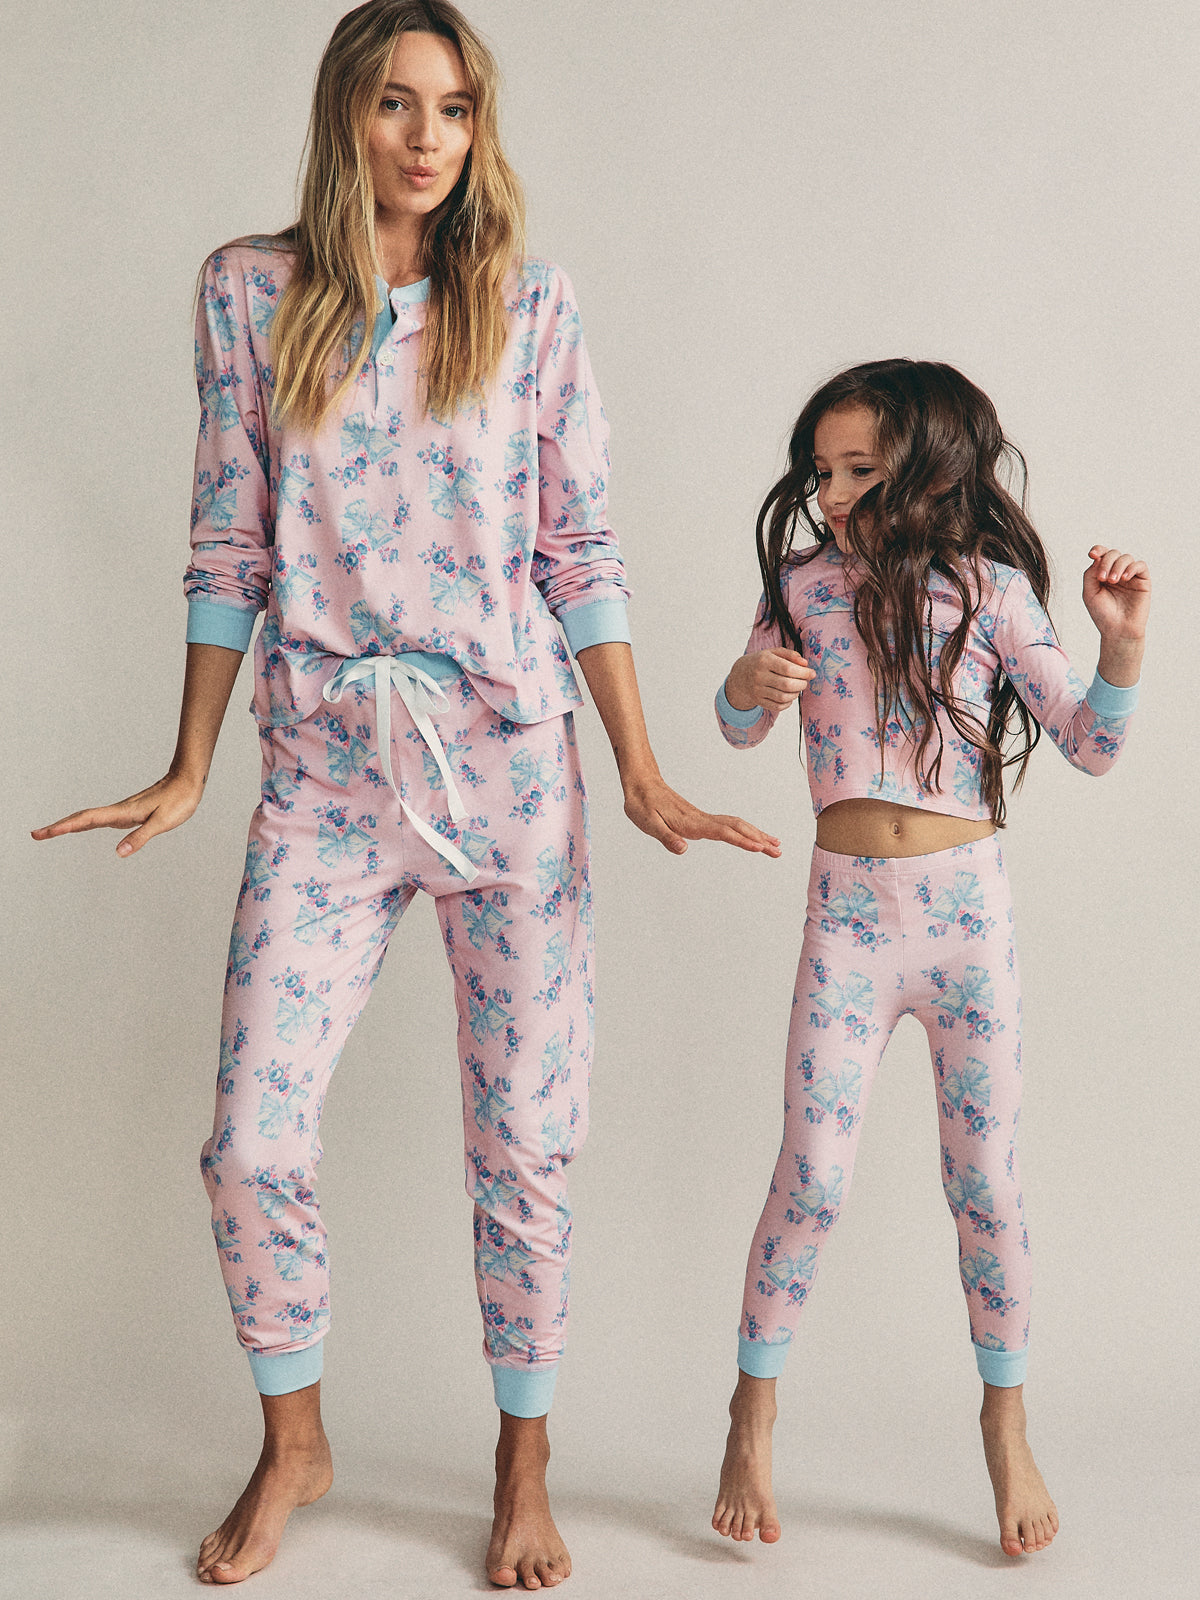 Lulu PJ Set in Candy Pink By Morgan Lane